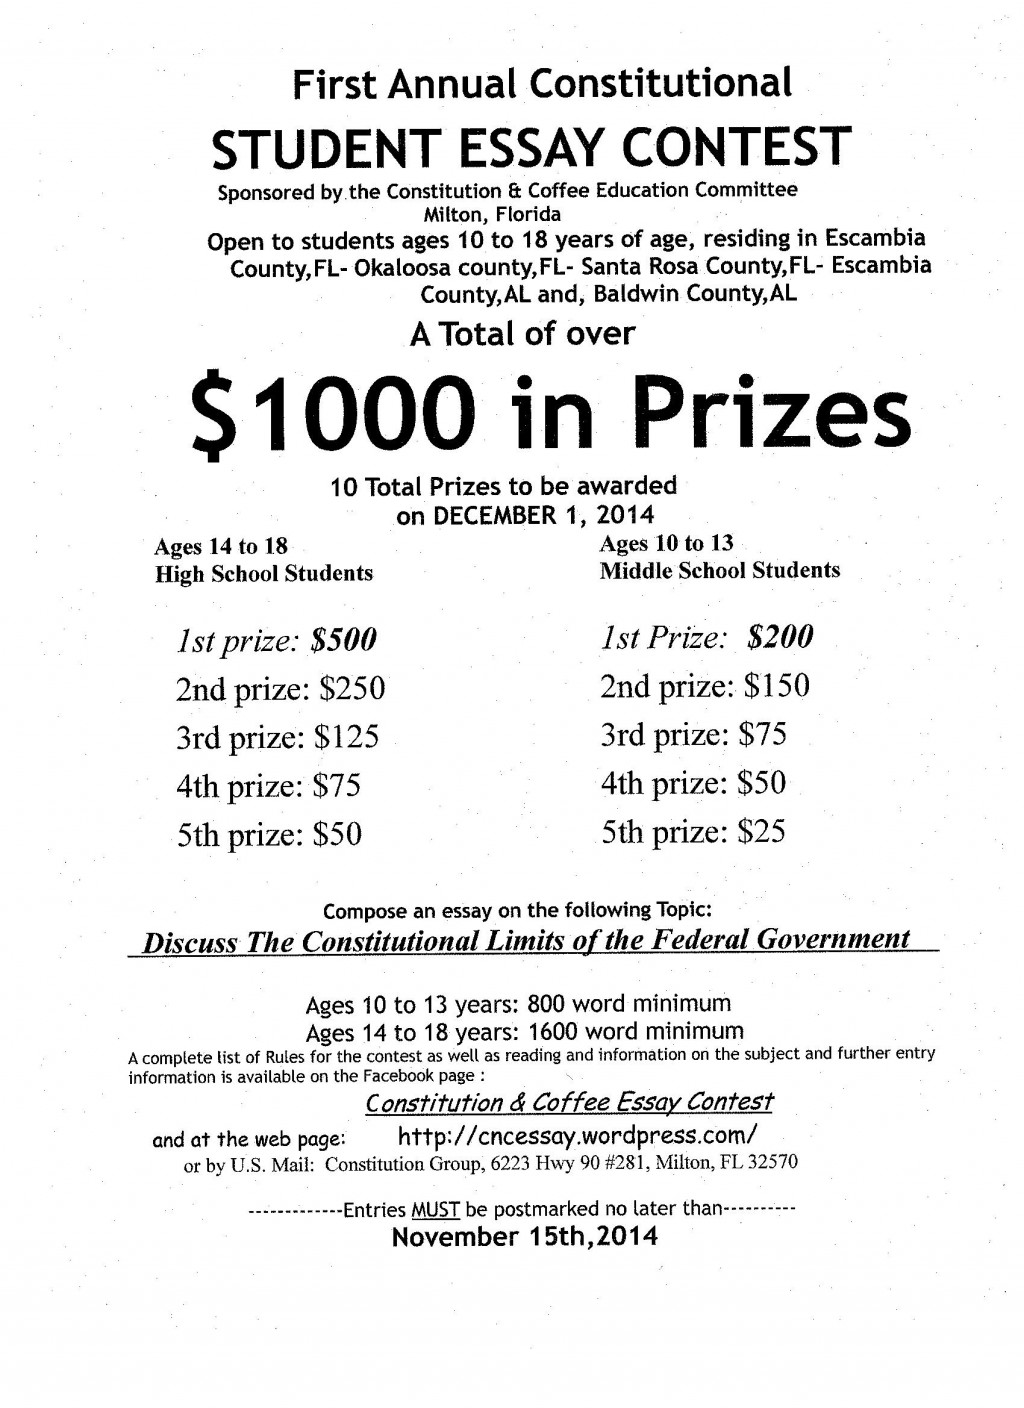 013 Essay Example Cheap Essays Contest Flyer Beautiful Paper Fast Essays.com Large